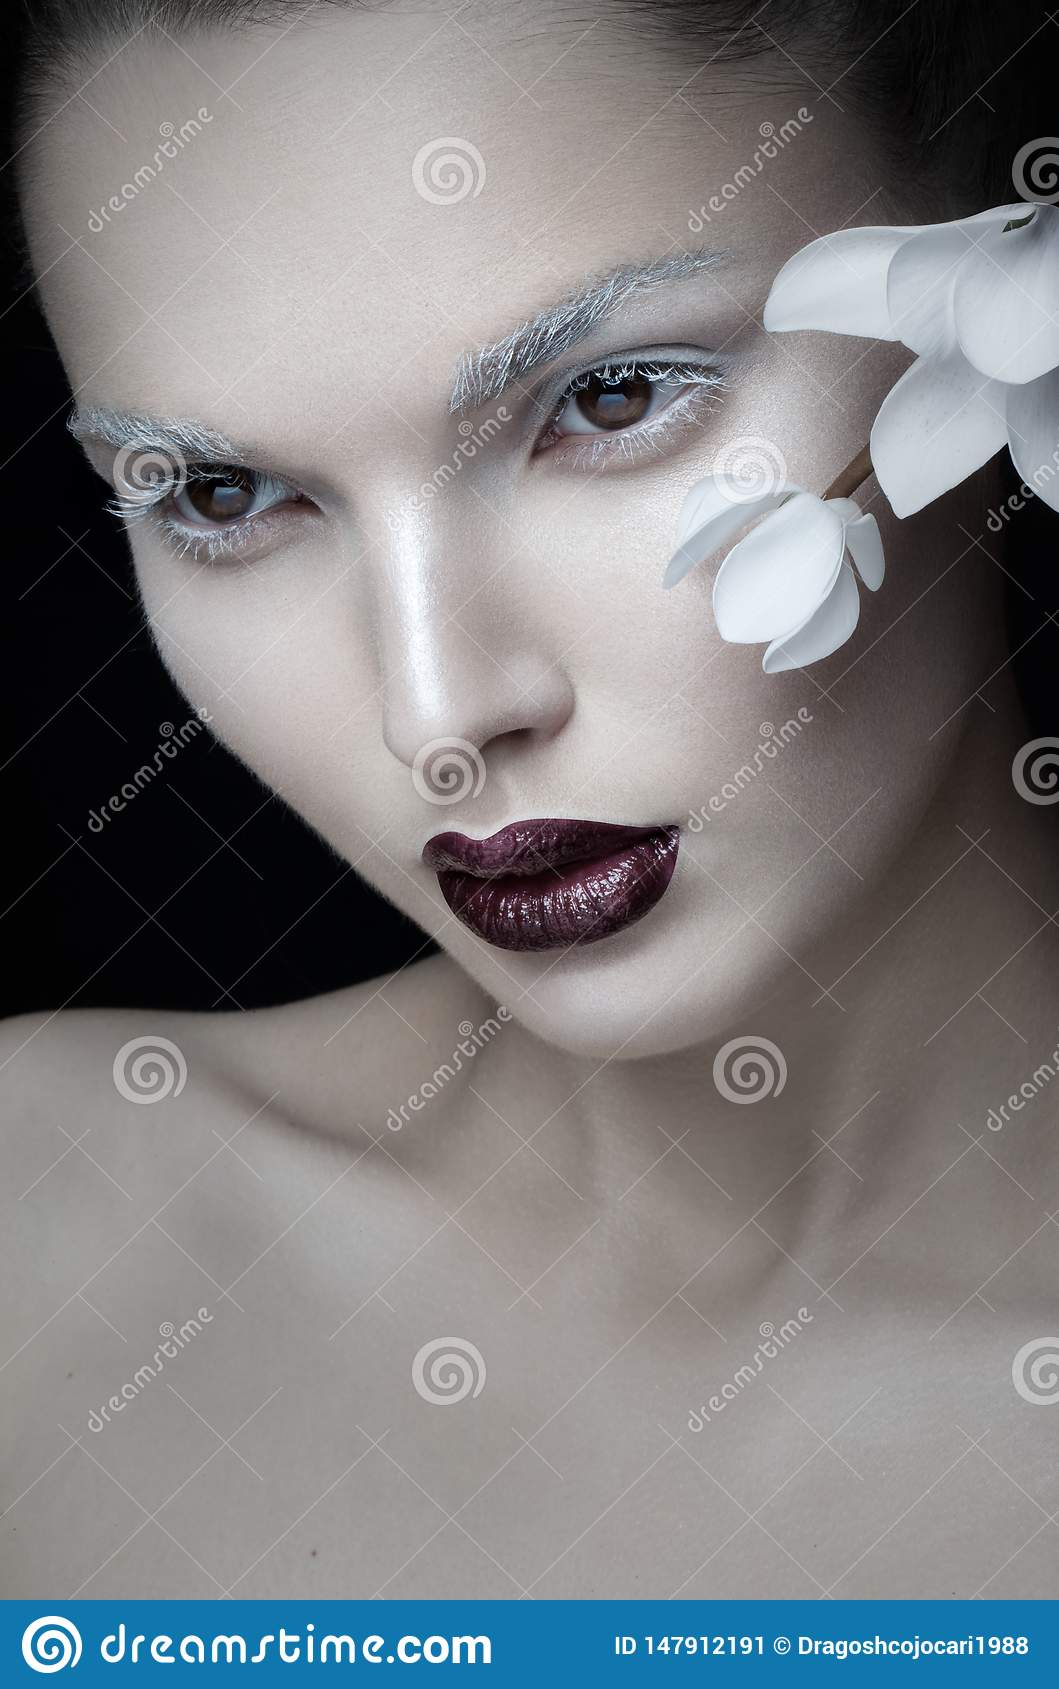 Frontal view of beauty portrait artistic makeup, burgundy lips, face, near white flower, isolated on black background.